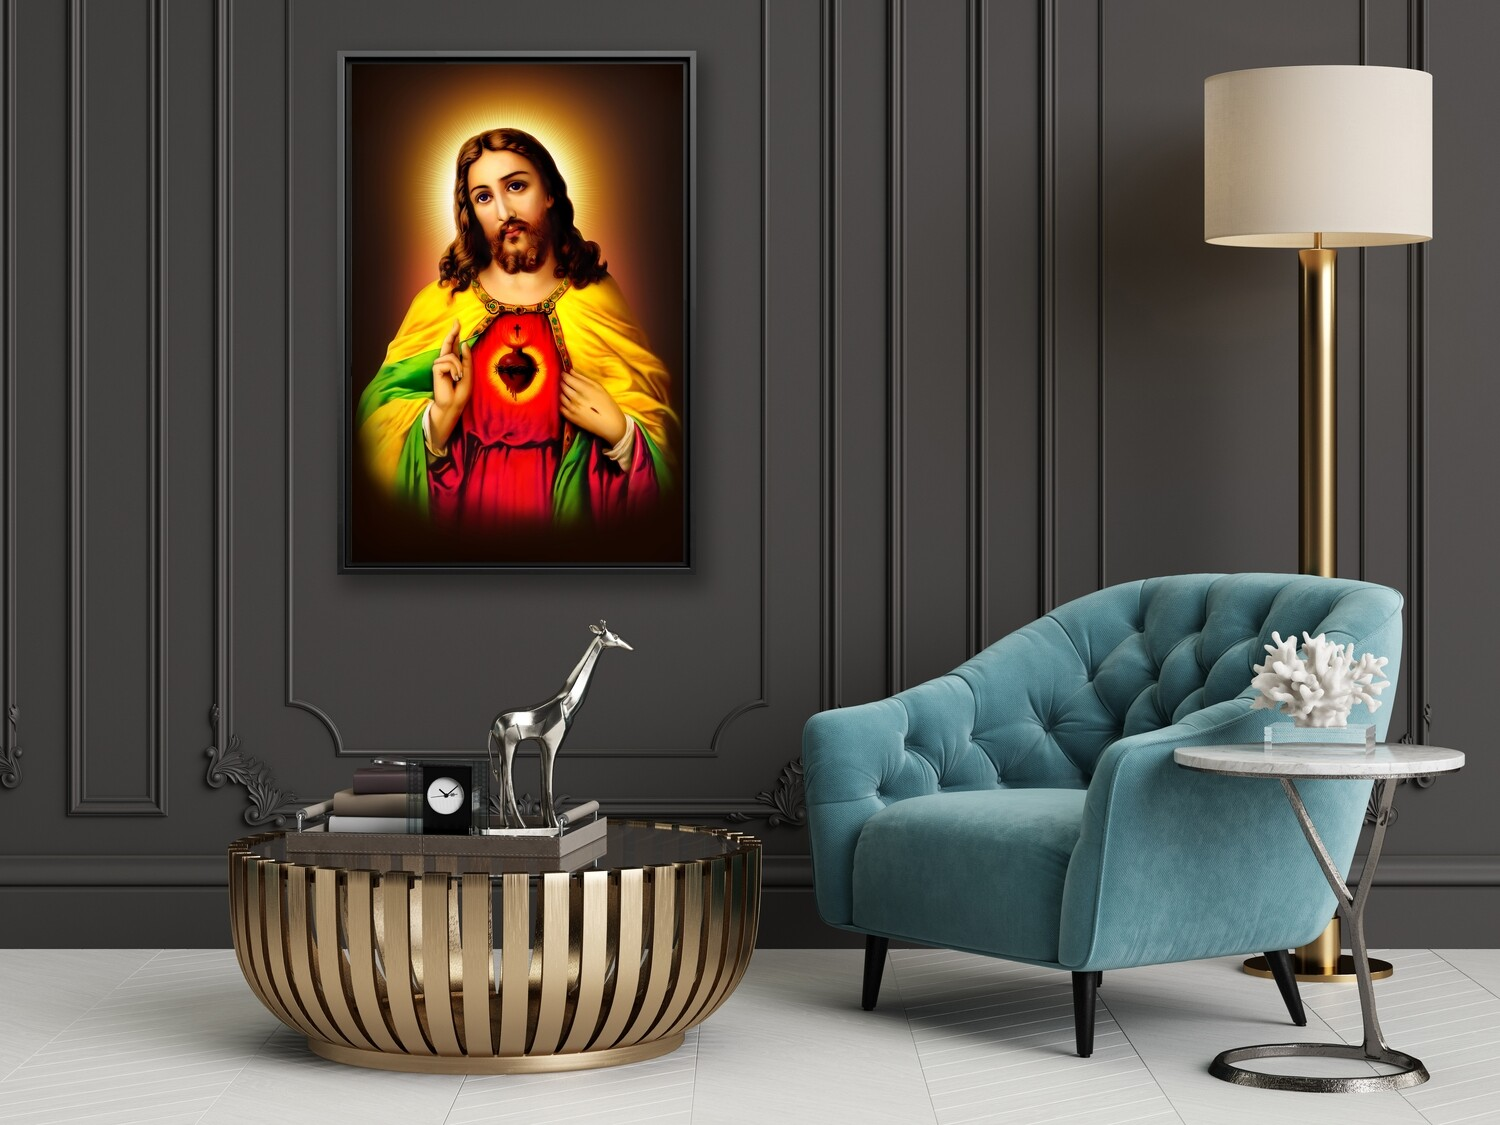 Jesus Christ Sacred Heart Painting |Framed Christian Wallart |Jesus Living Heart Picture Printed on  Acrylic Glass |Framed and Ready To Hang